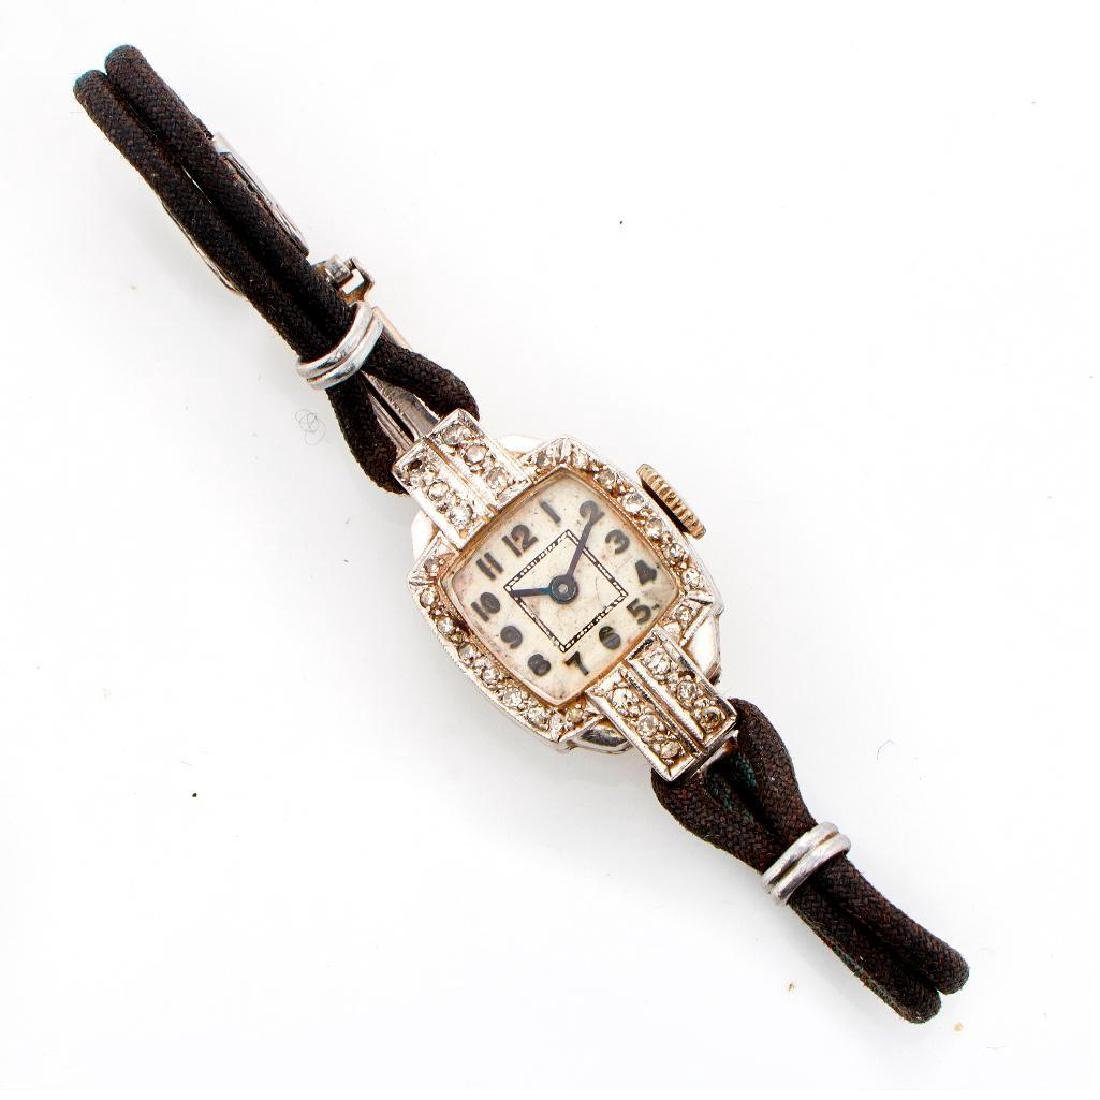 Vintage ladies diamond and platinum watch